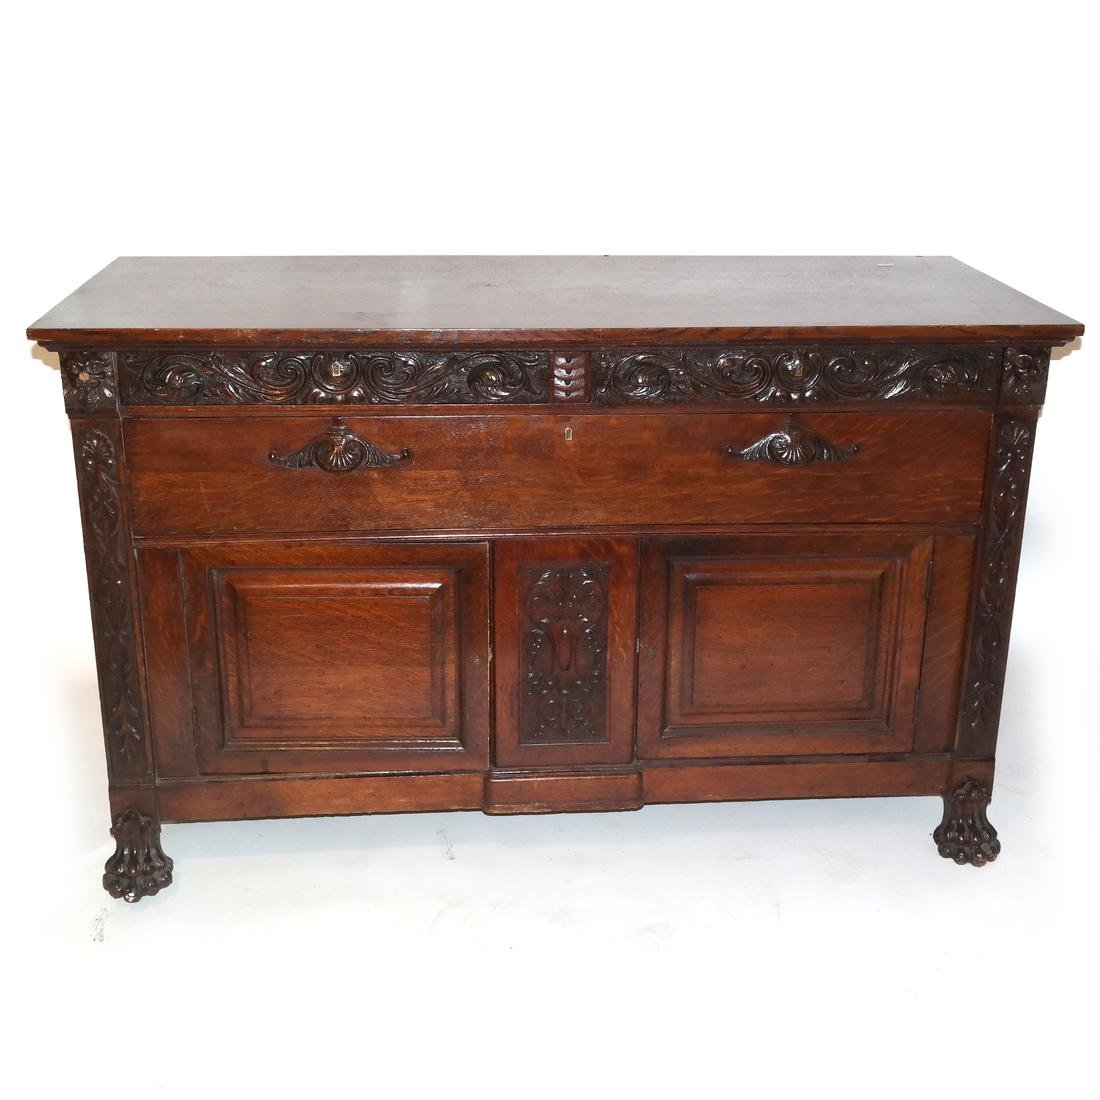 Antique Ornate Golden Oak Sideboard